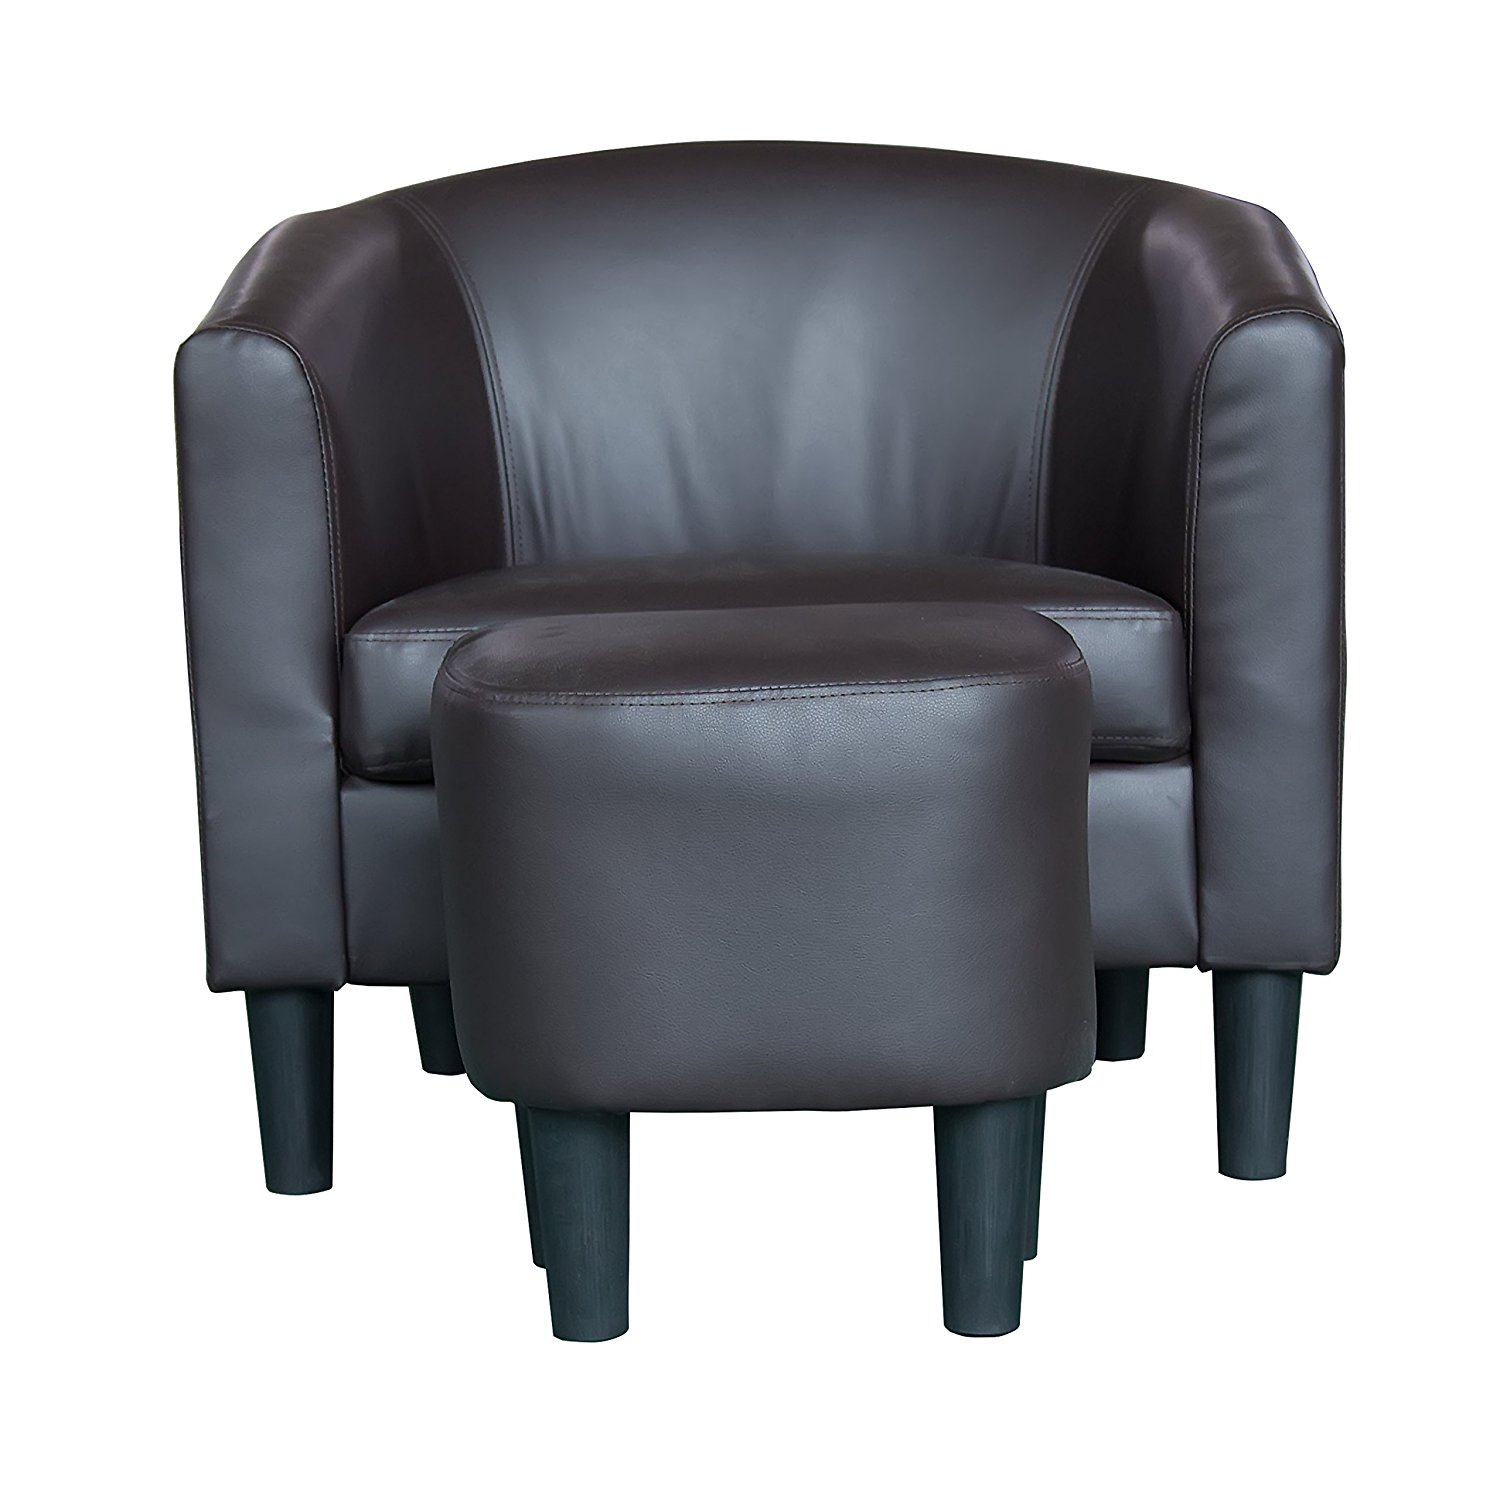 Cheap Accent Chair And Ottoman Find Accent Chair And